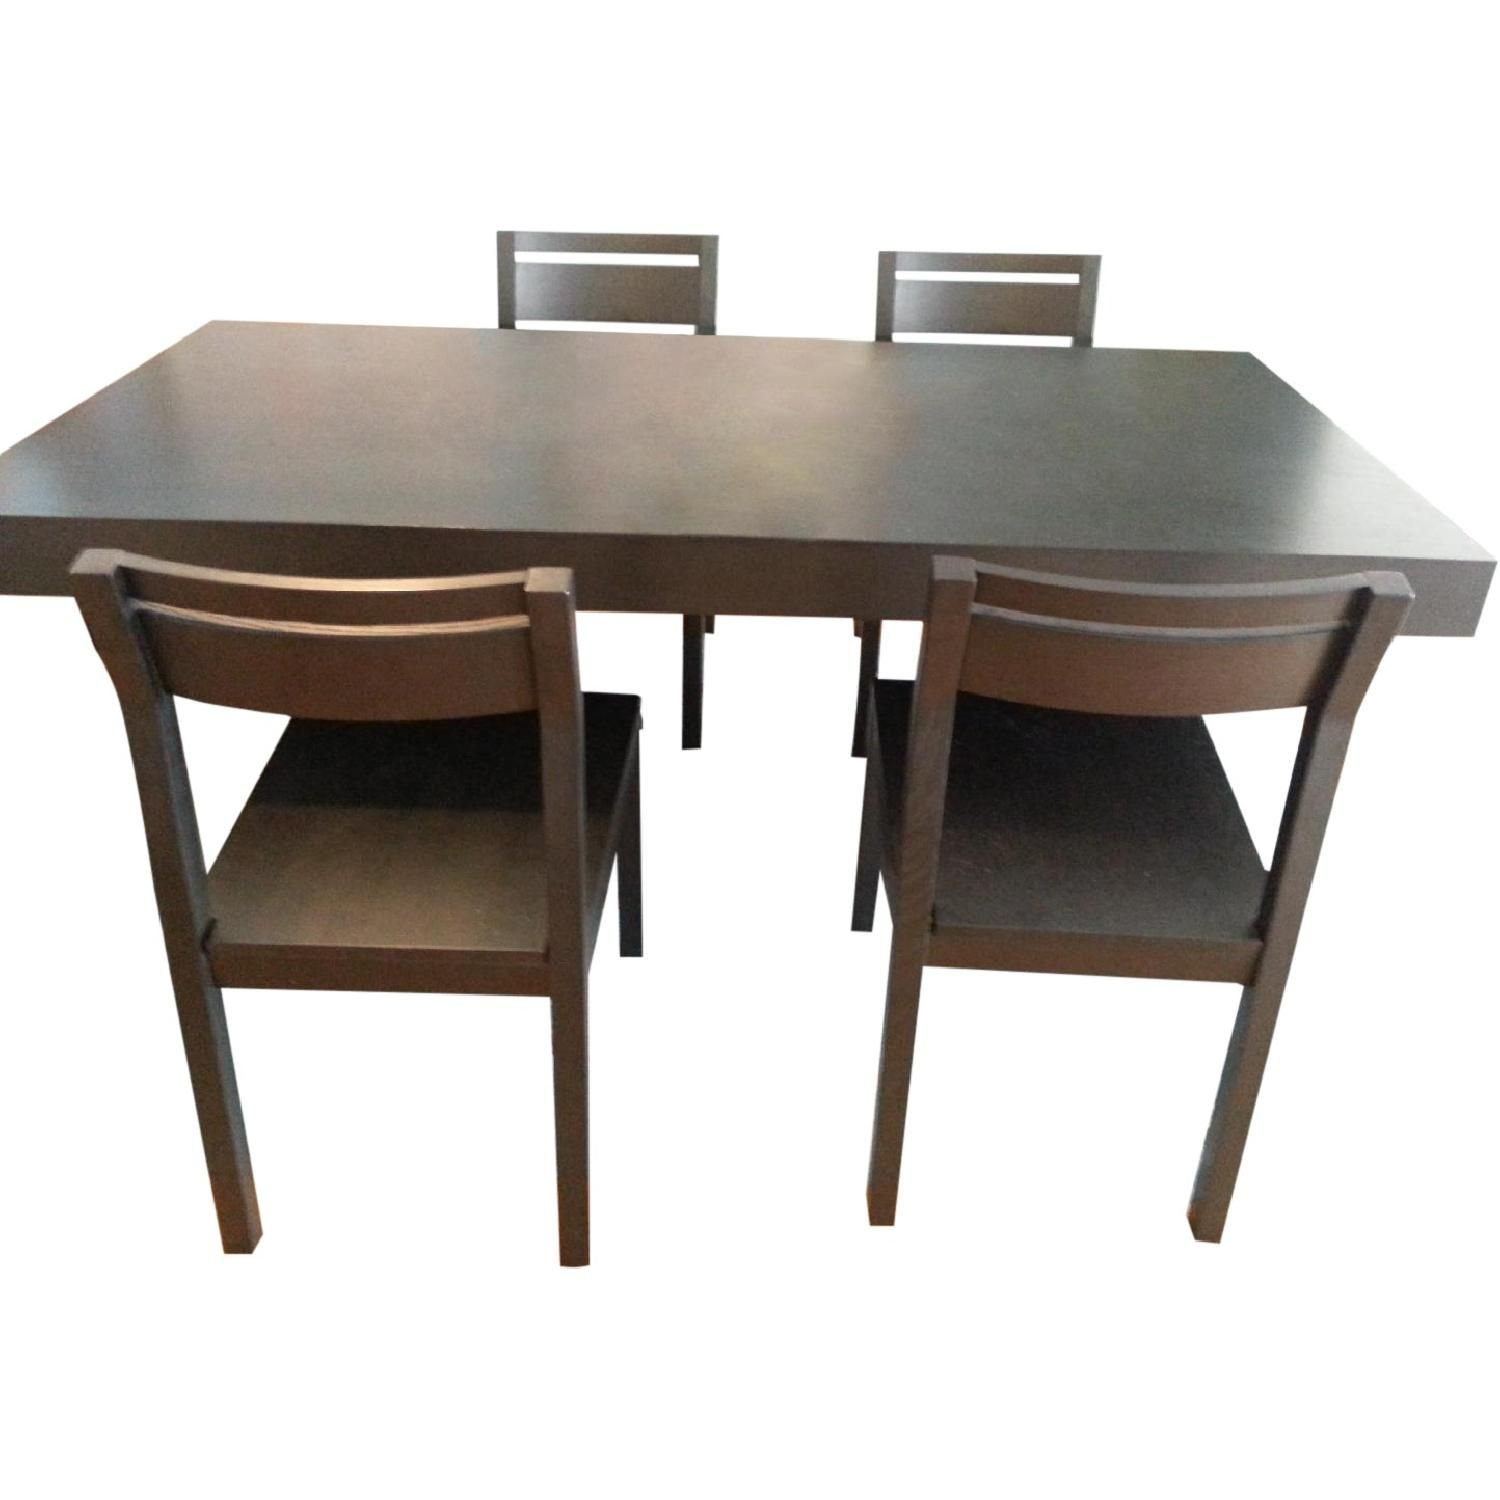 West Elm Terra Dining Table W Chairs Working Tables Pinterest - West elm terra dining table